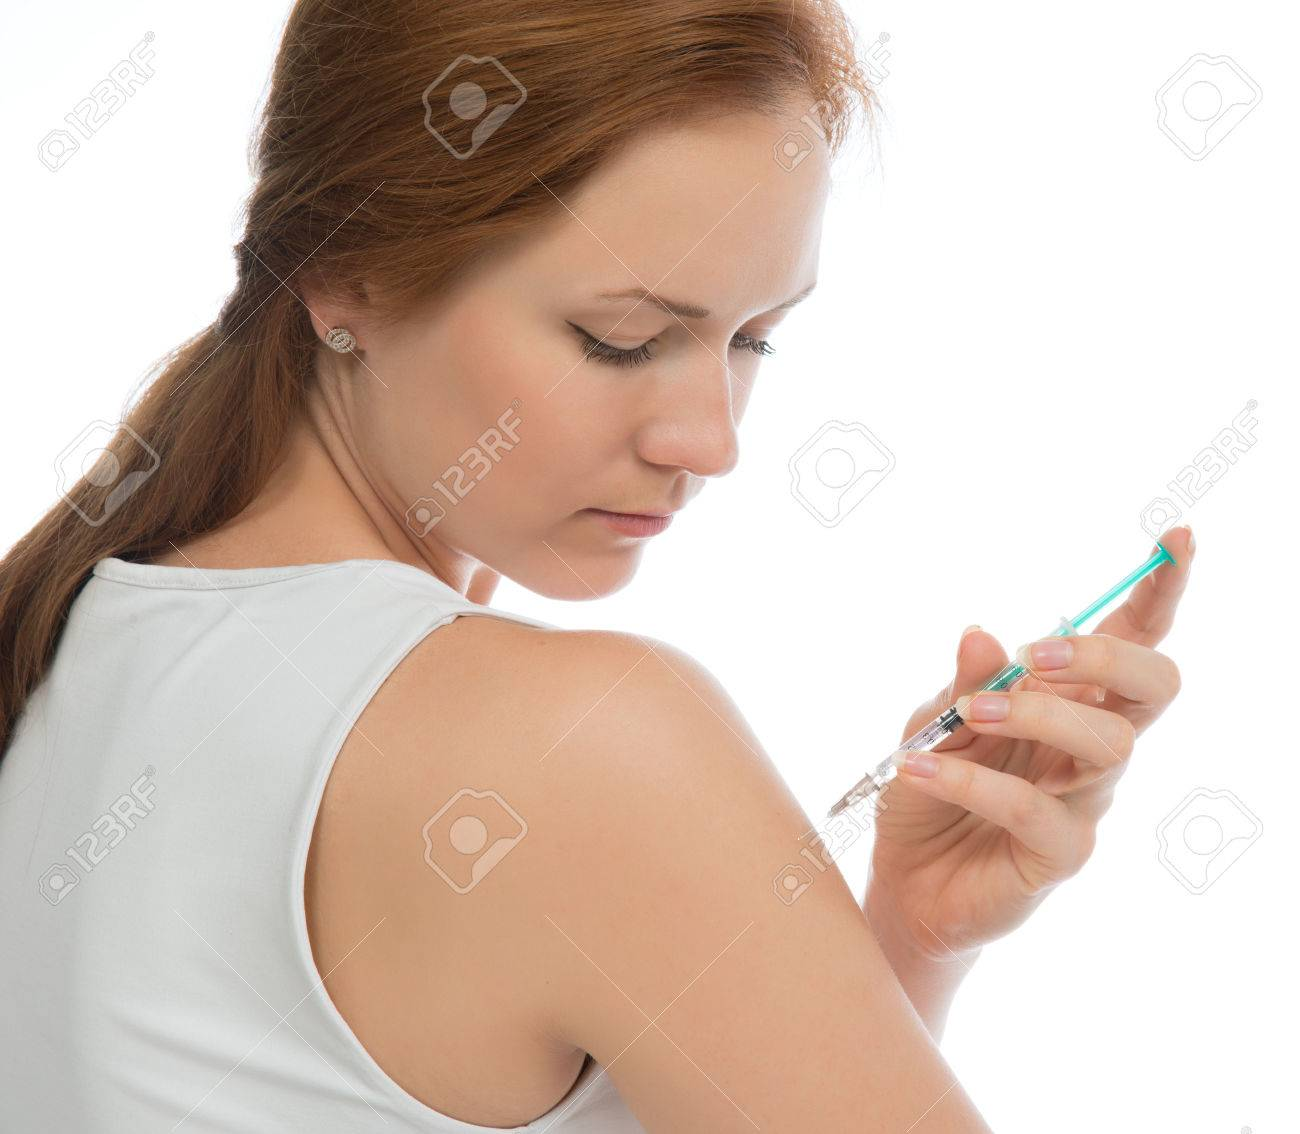 Diabetes woman patient make an arm subcutaneous insulin syringe injection vaccination shot at home on white - 29083517